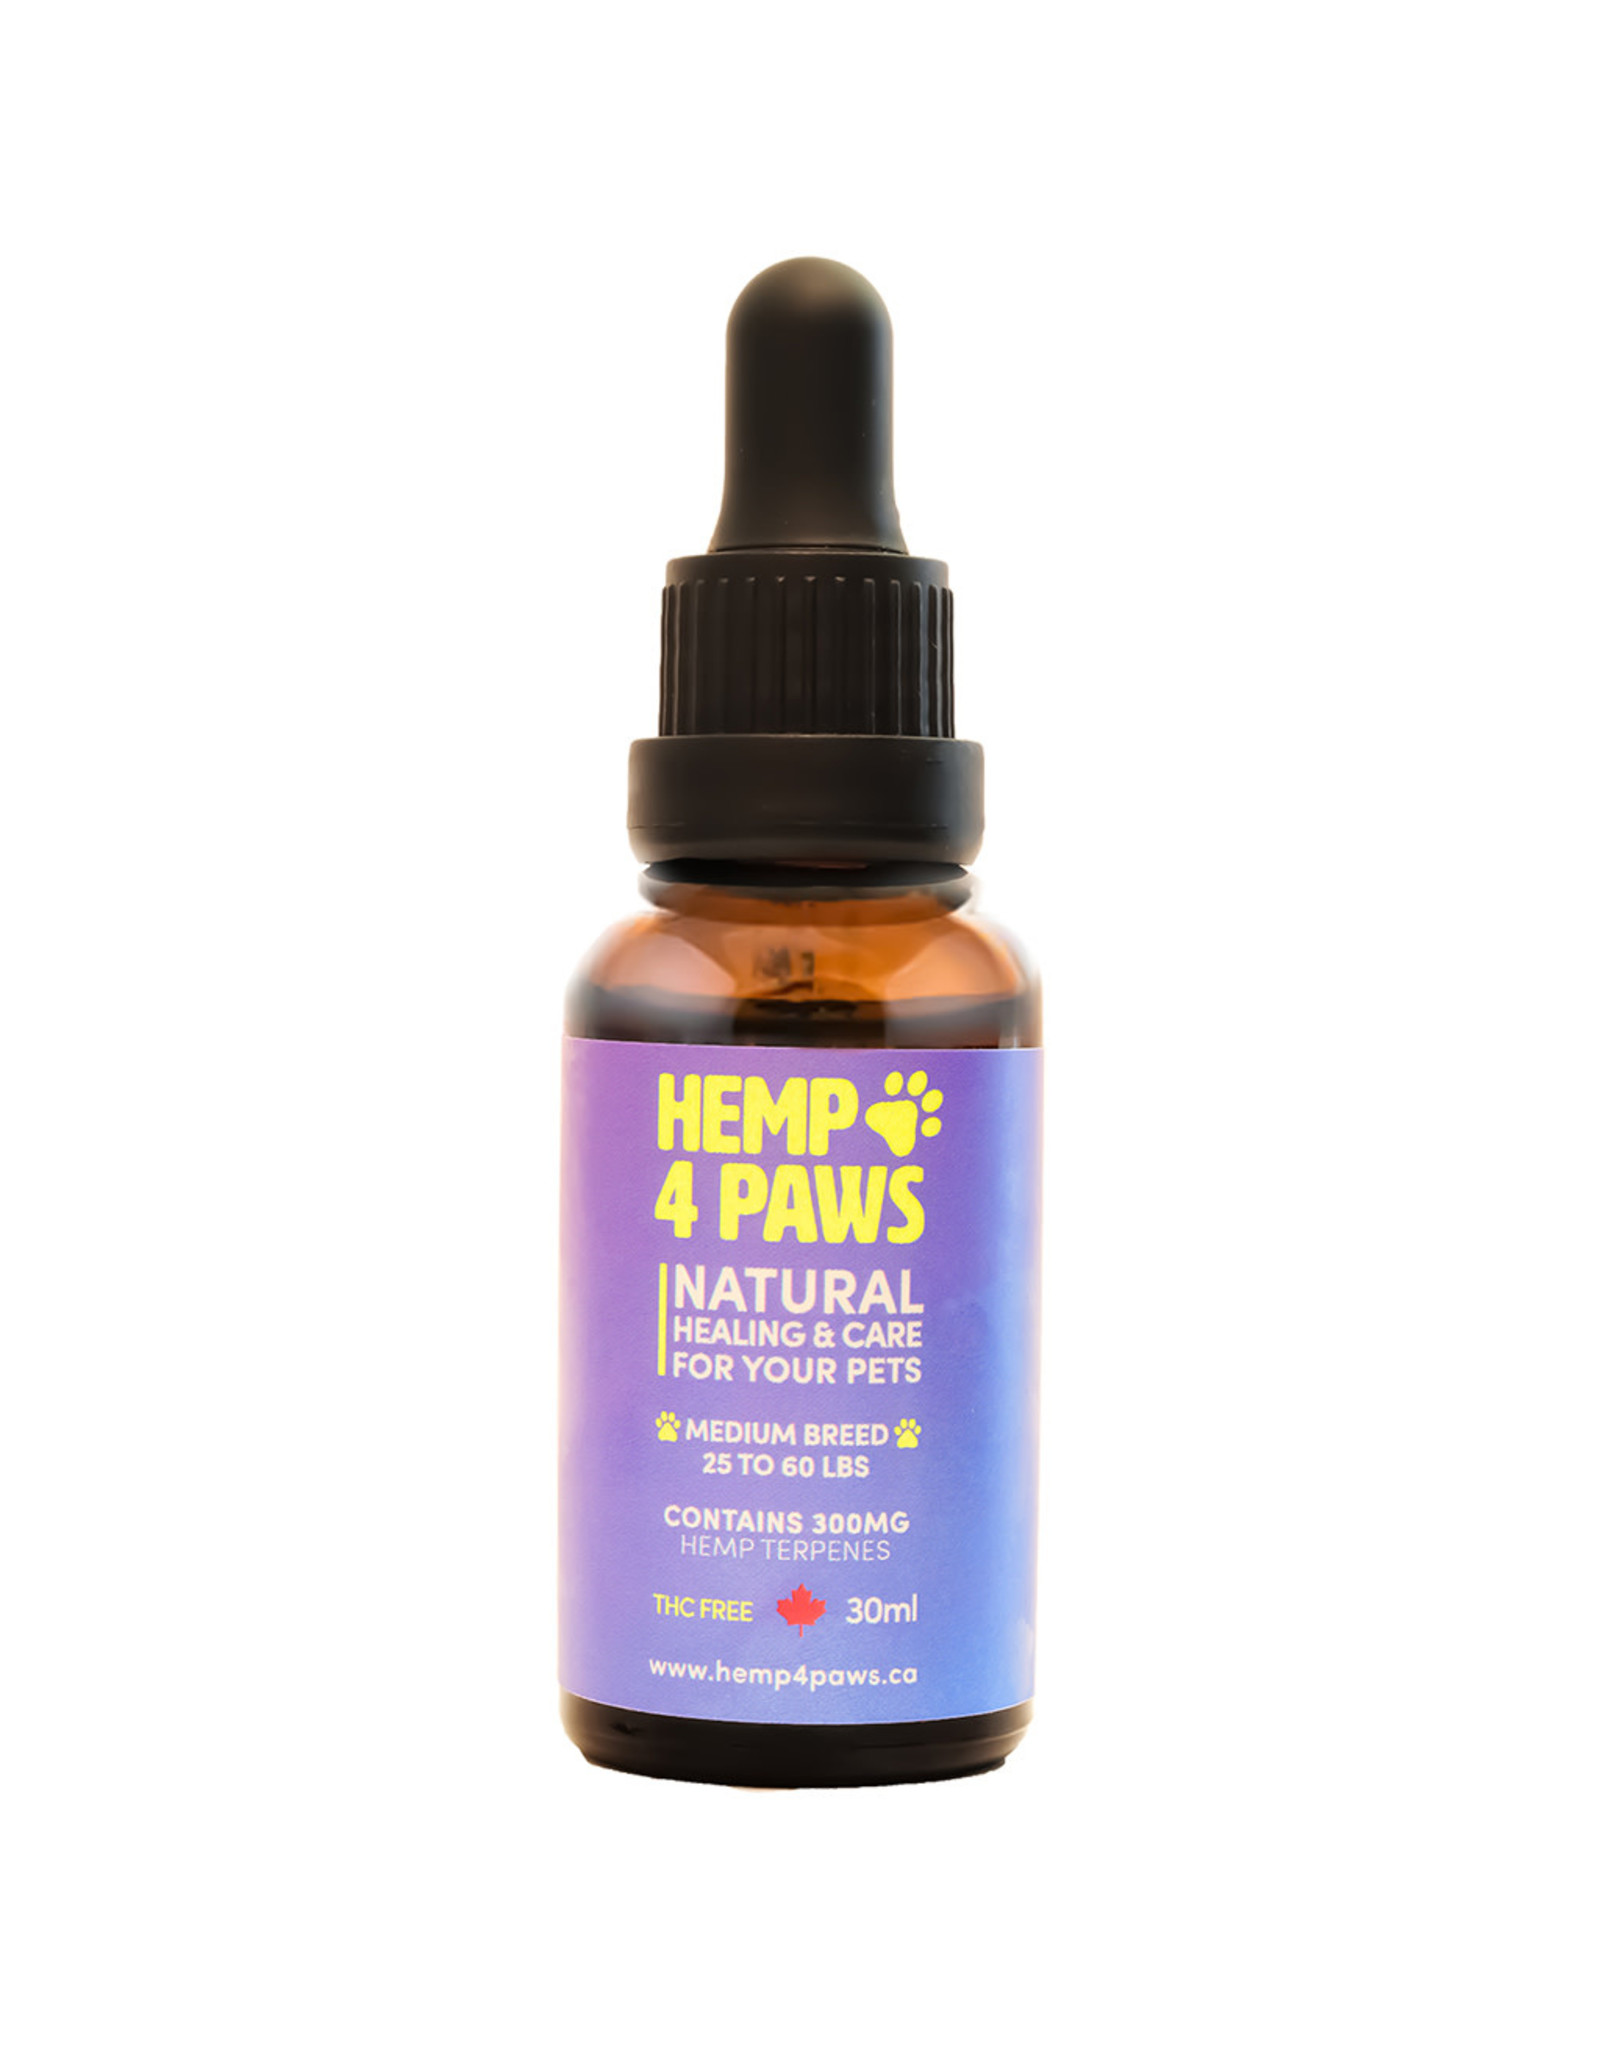 Hemp 4 Paws Hemp Seed Oil